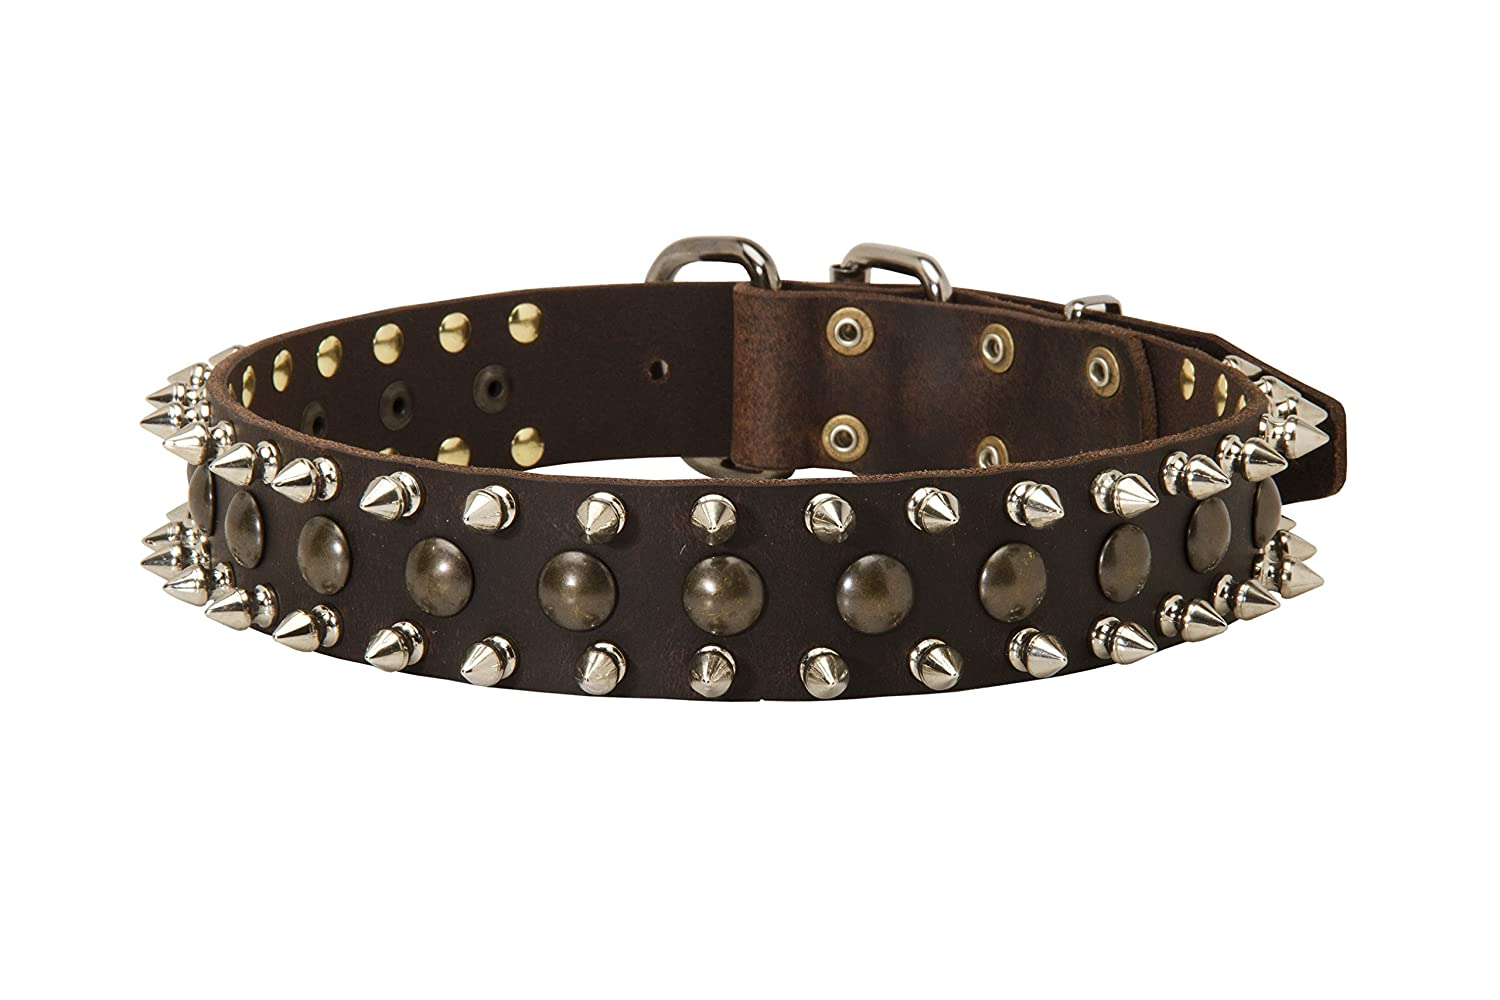 Black fits for 24 inch dog's neck size Black fits for 24 inch dog's neck size 24 inch Fashionable Spiked and Studded Black Leather Dog Collar  Thorn Kick  1 1 2 inch (40 mm) wide